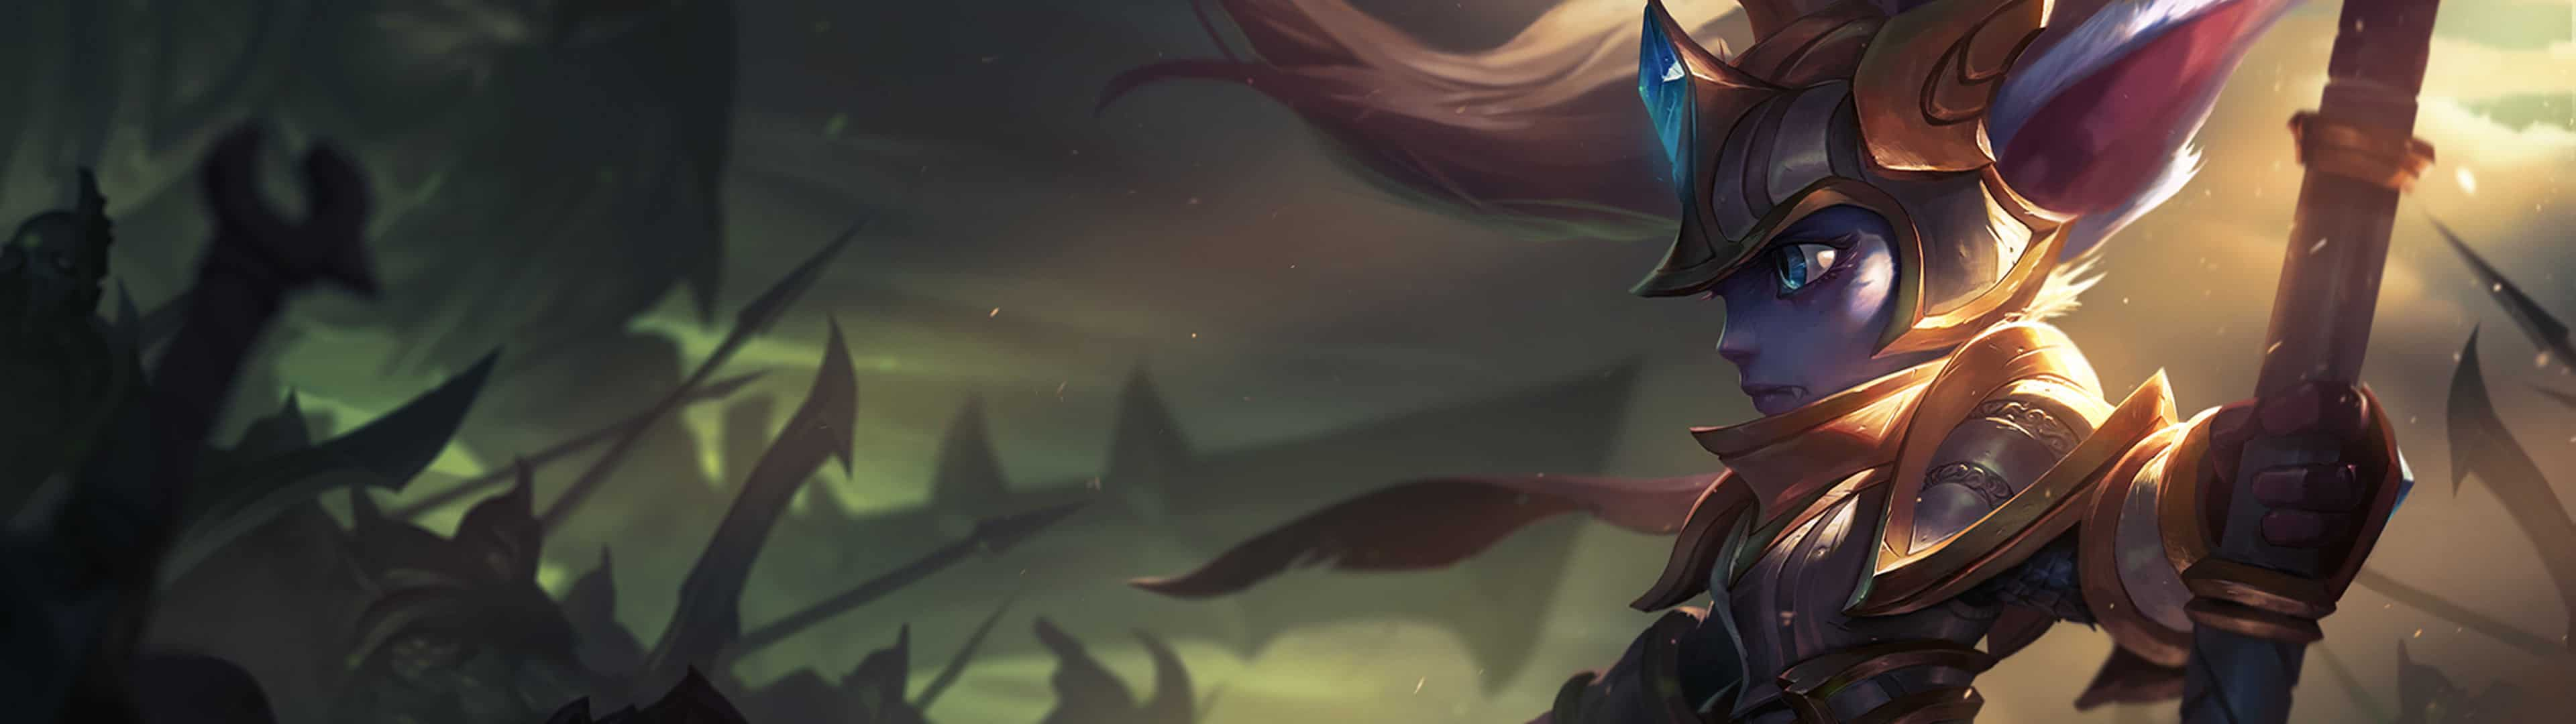 Related Images. league of legends champions dual monitor wallpaper